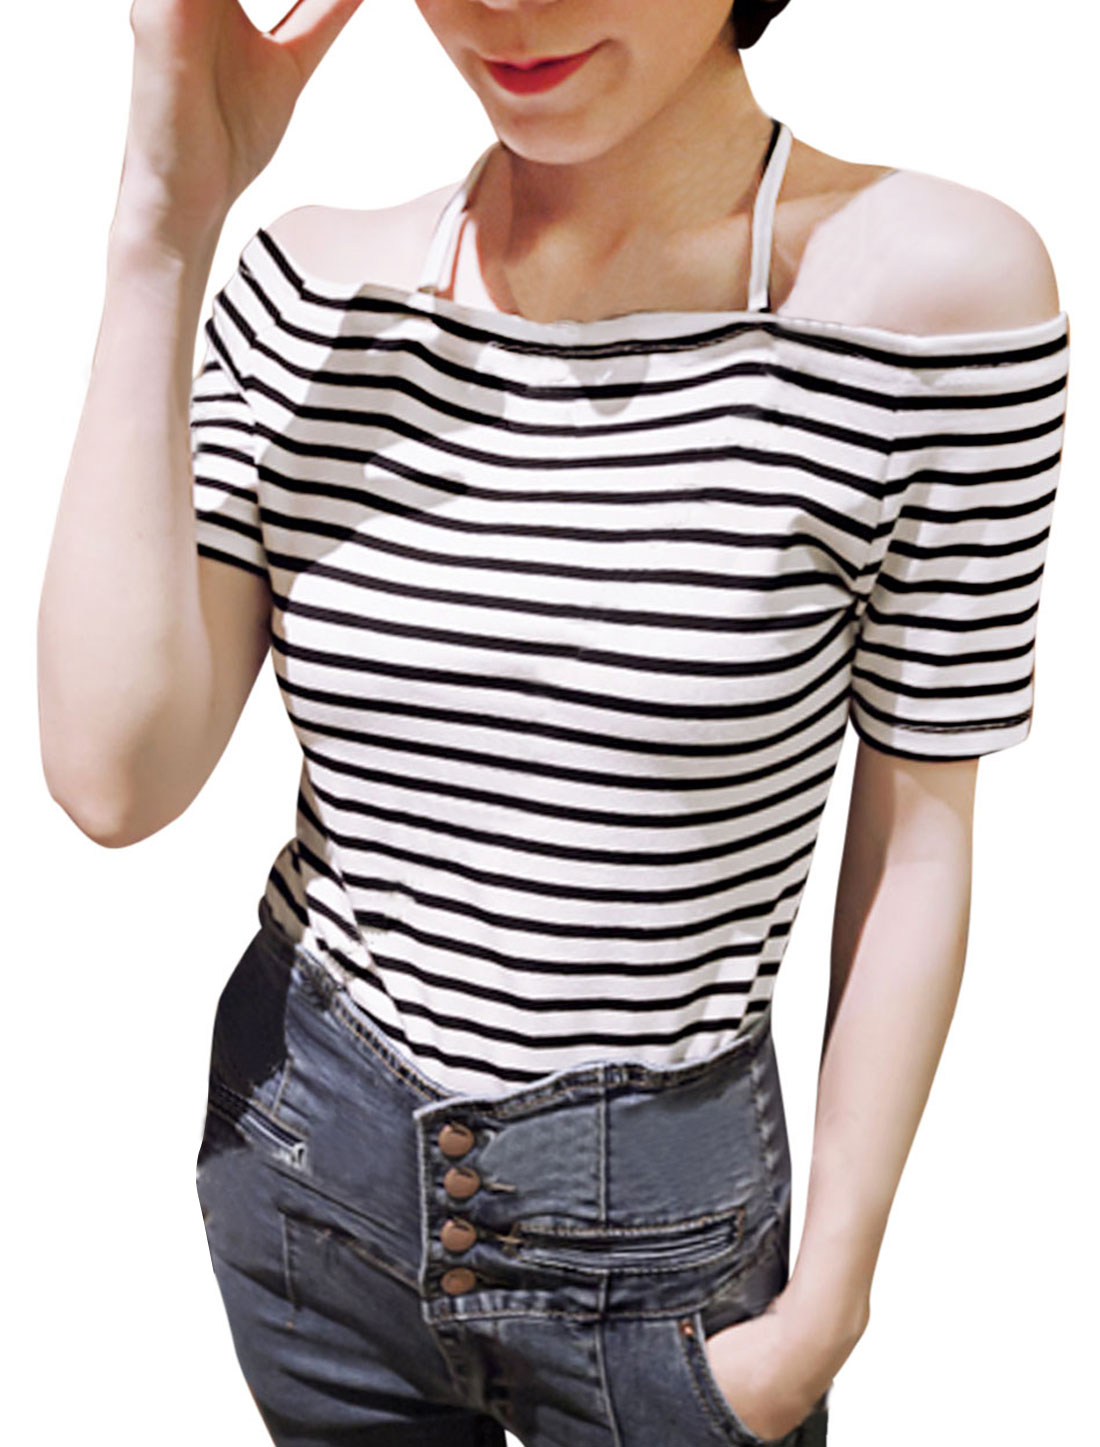 Ladies Spaghetti Straps Short Sleeve Stripes Slim Fit Top White Black XS